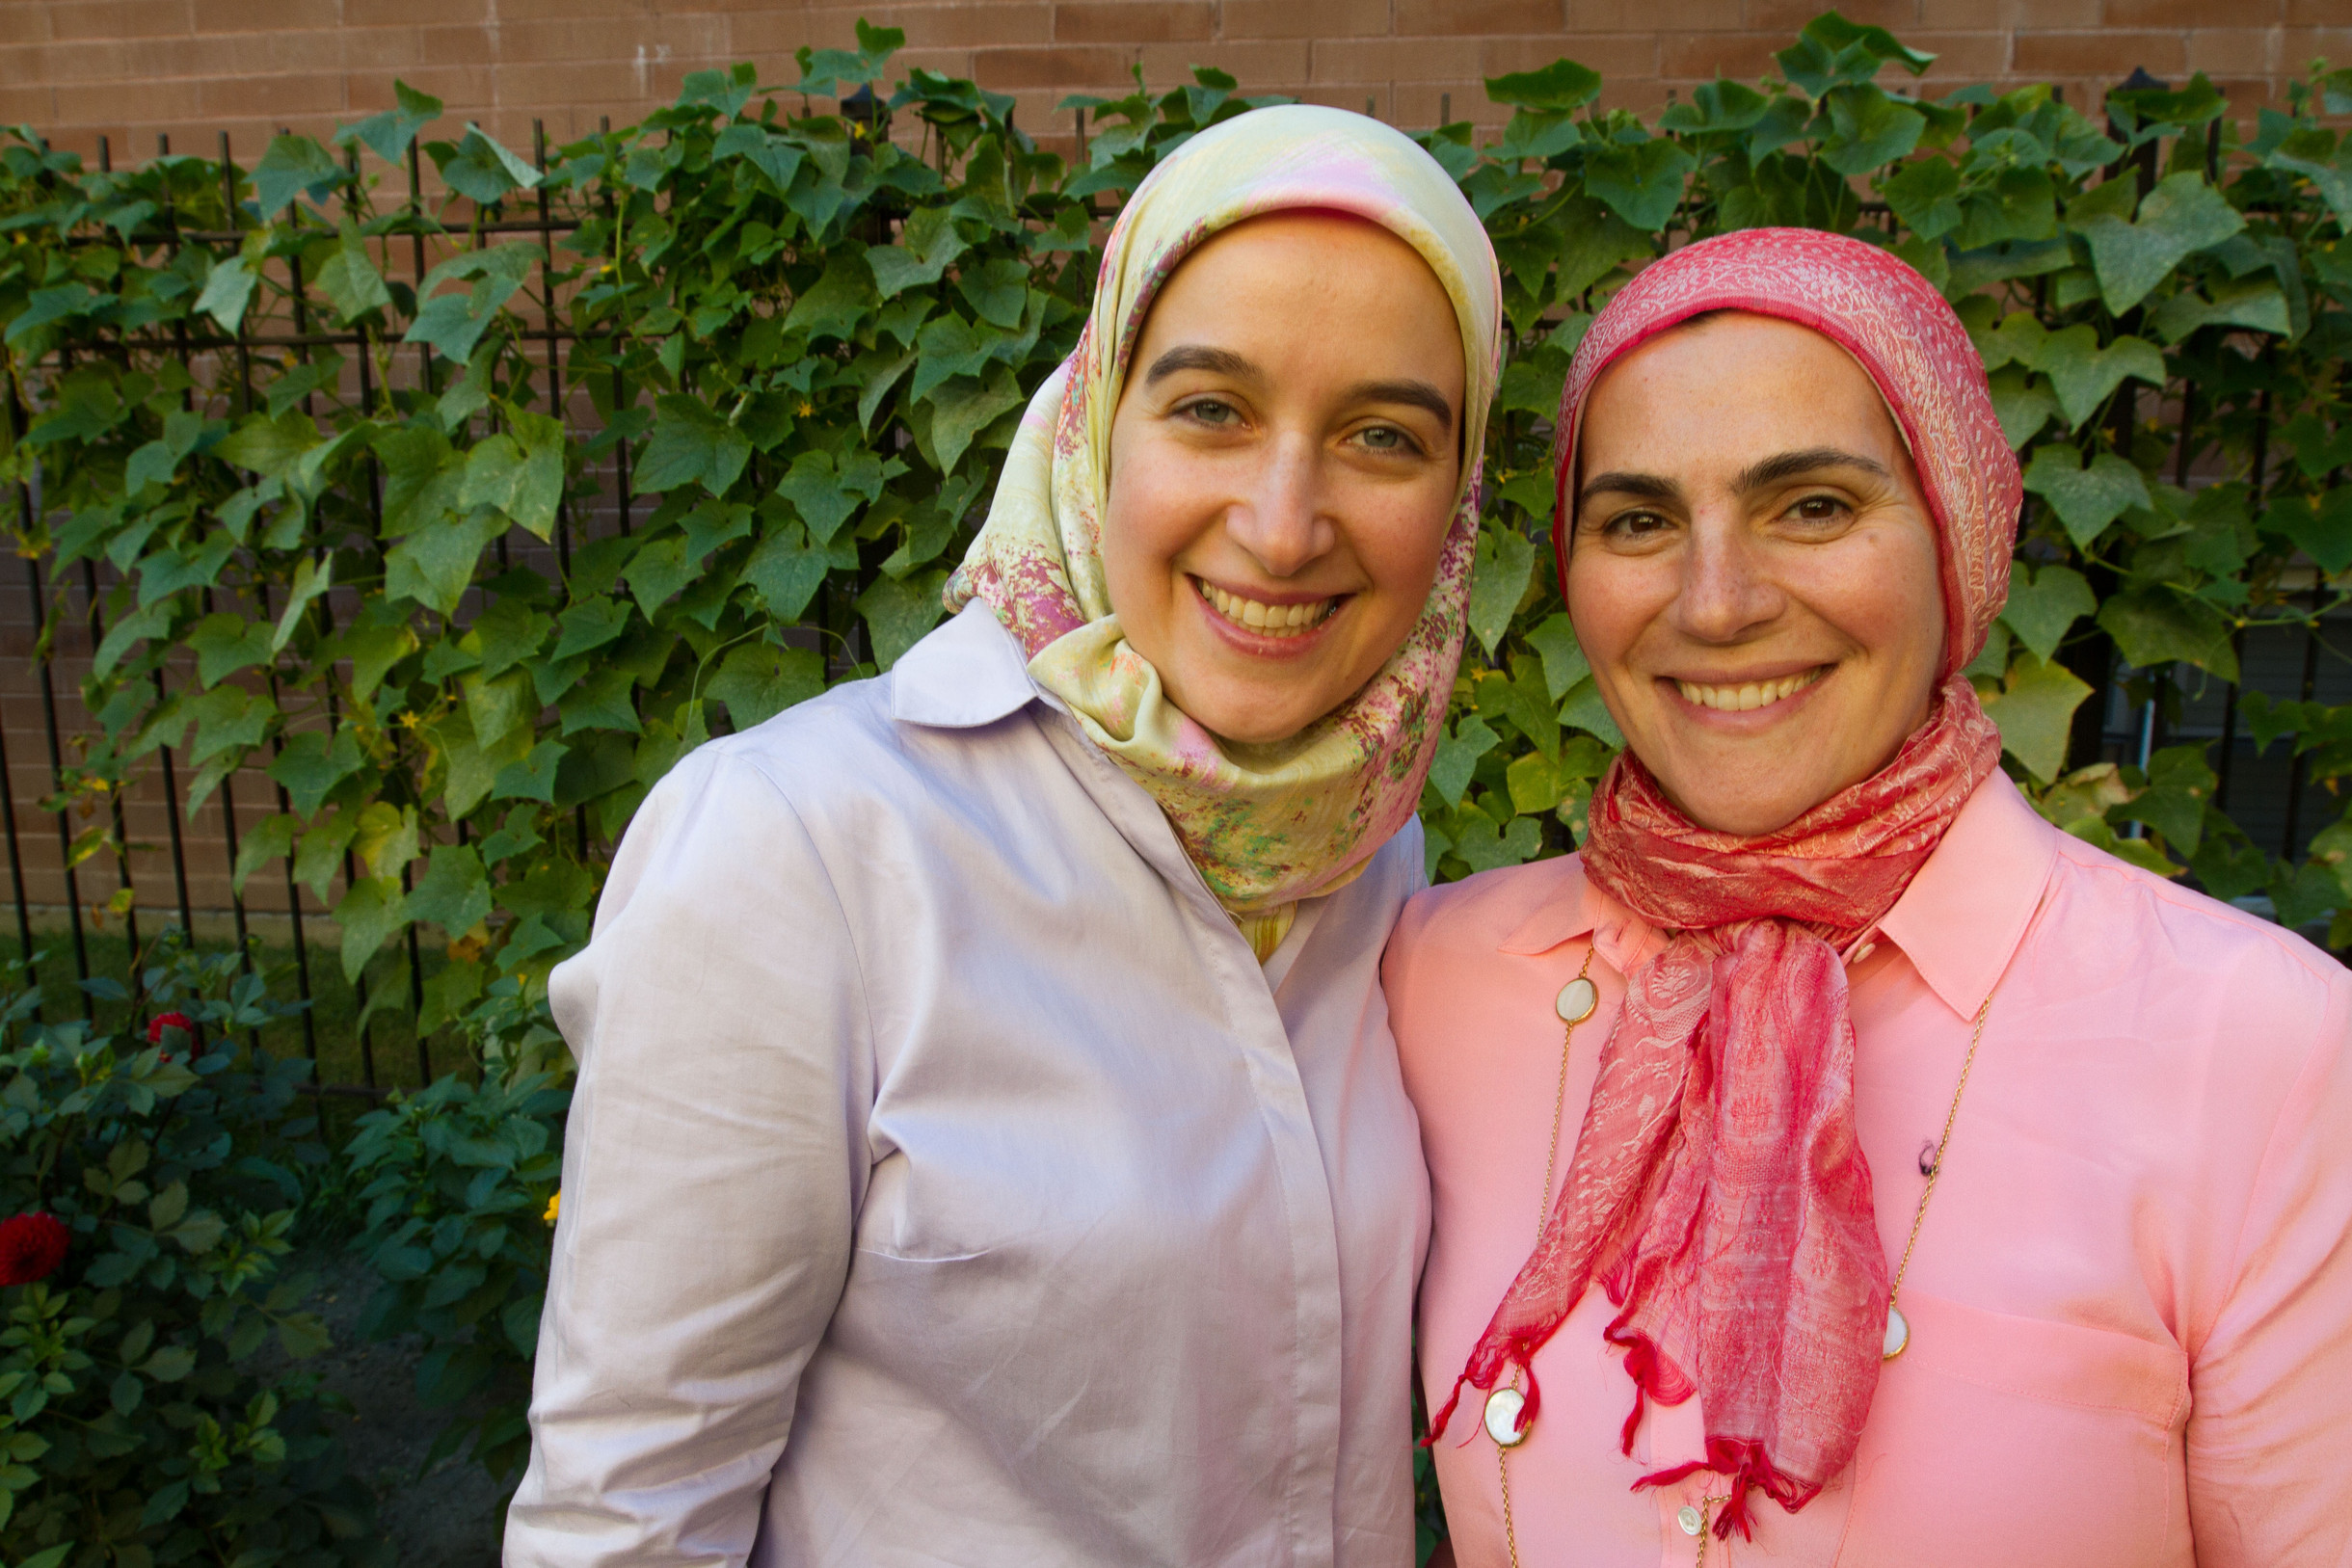 Hadia Zarzour and Suzanne Akhras Sahloul of the Syrian Community Network in Chicago. Photo credit: Coco McCabe/Oxfam